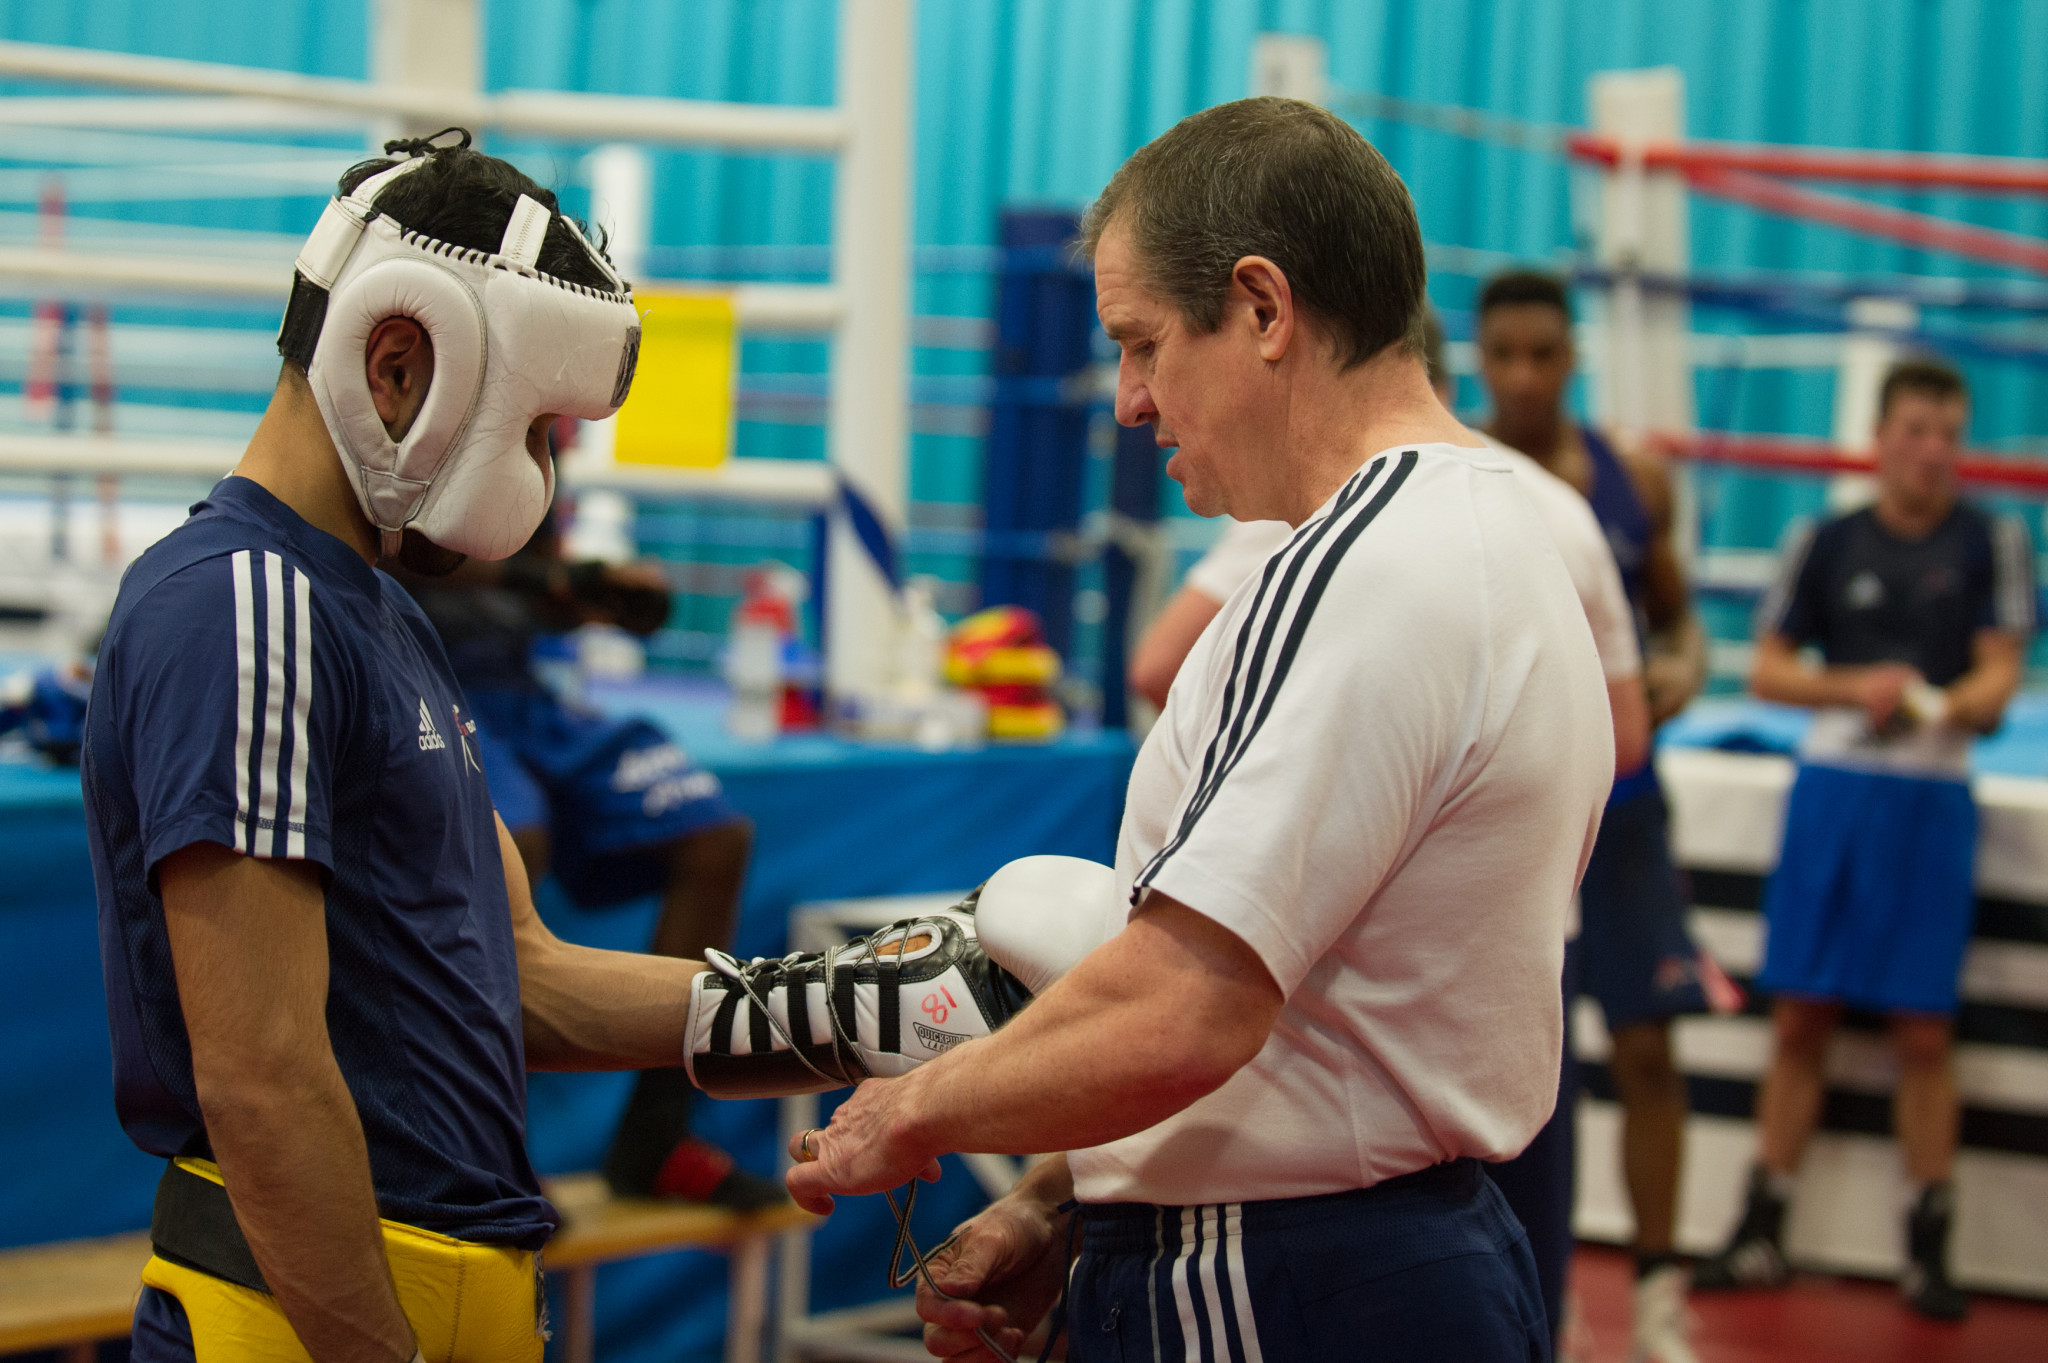 Experienced boxing coach Walmsley leaves British team prior to Tokyo 2020